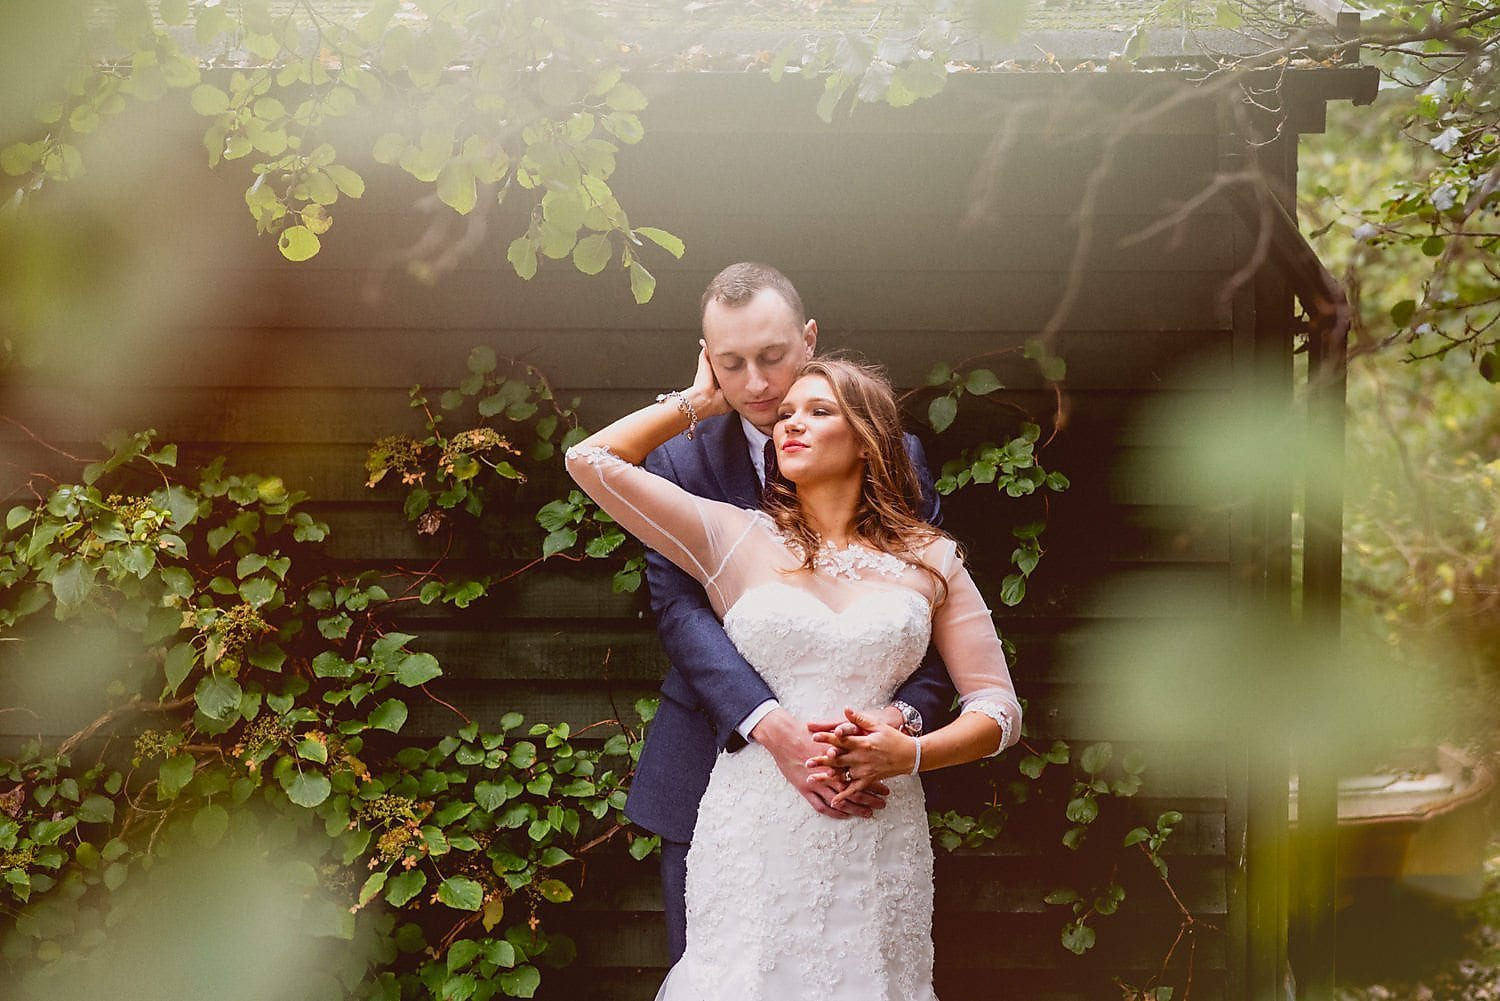 Bride and groom Coltsford Mill wedding portrait